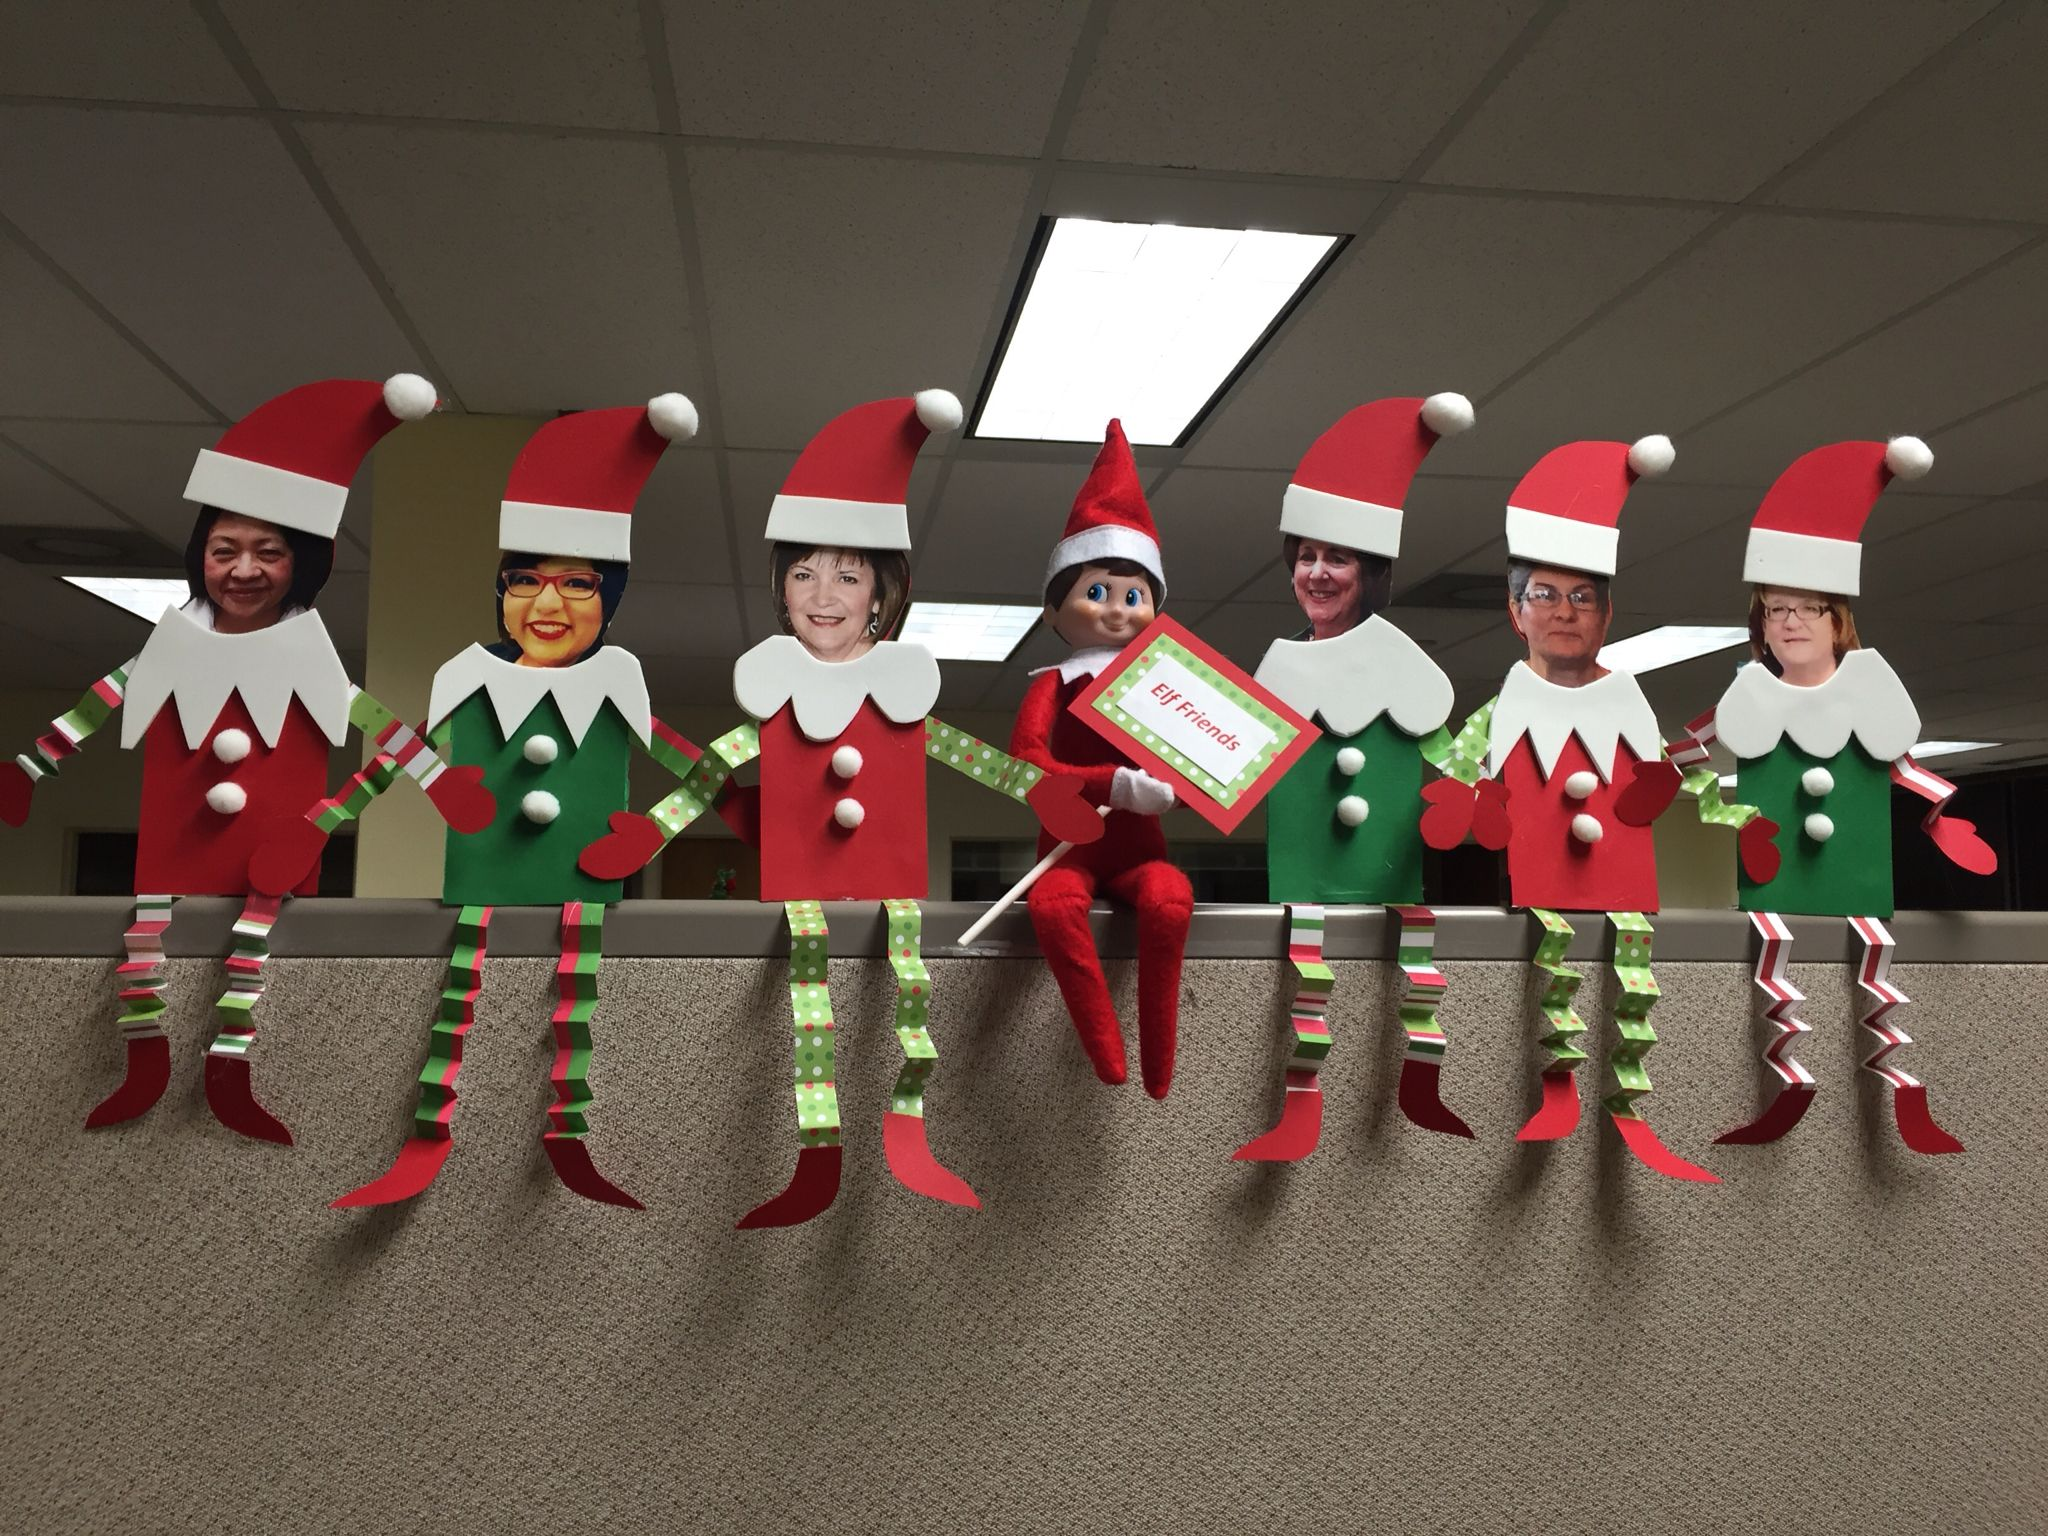 Elf on the shelf at the office. Elf Friends.